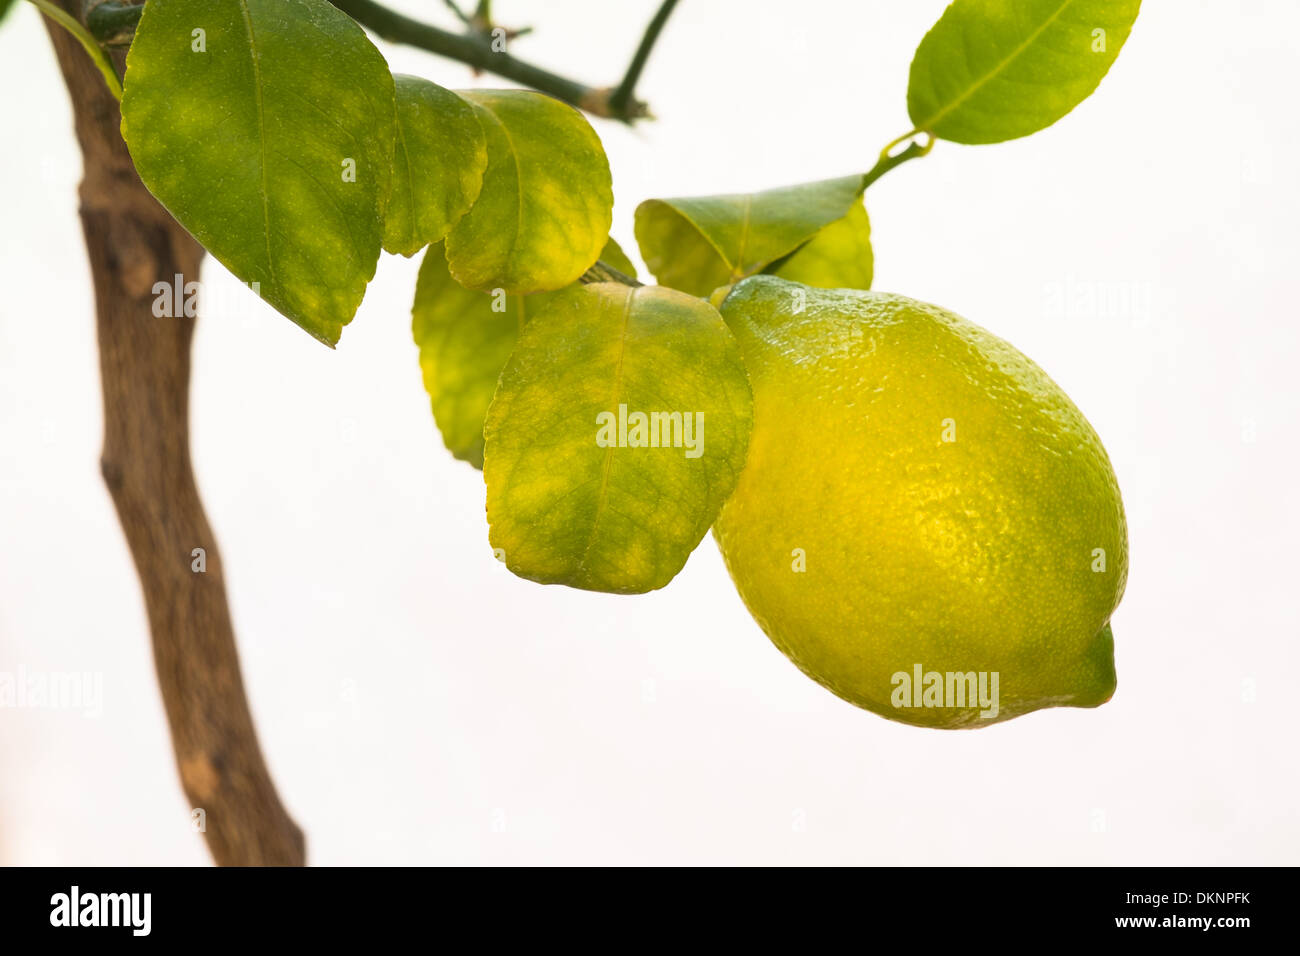 Close Up of a Lemon on a Tree with a Neutral Background. - Stock Image